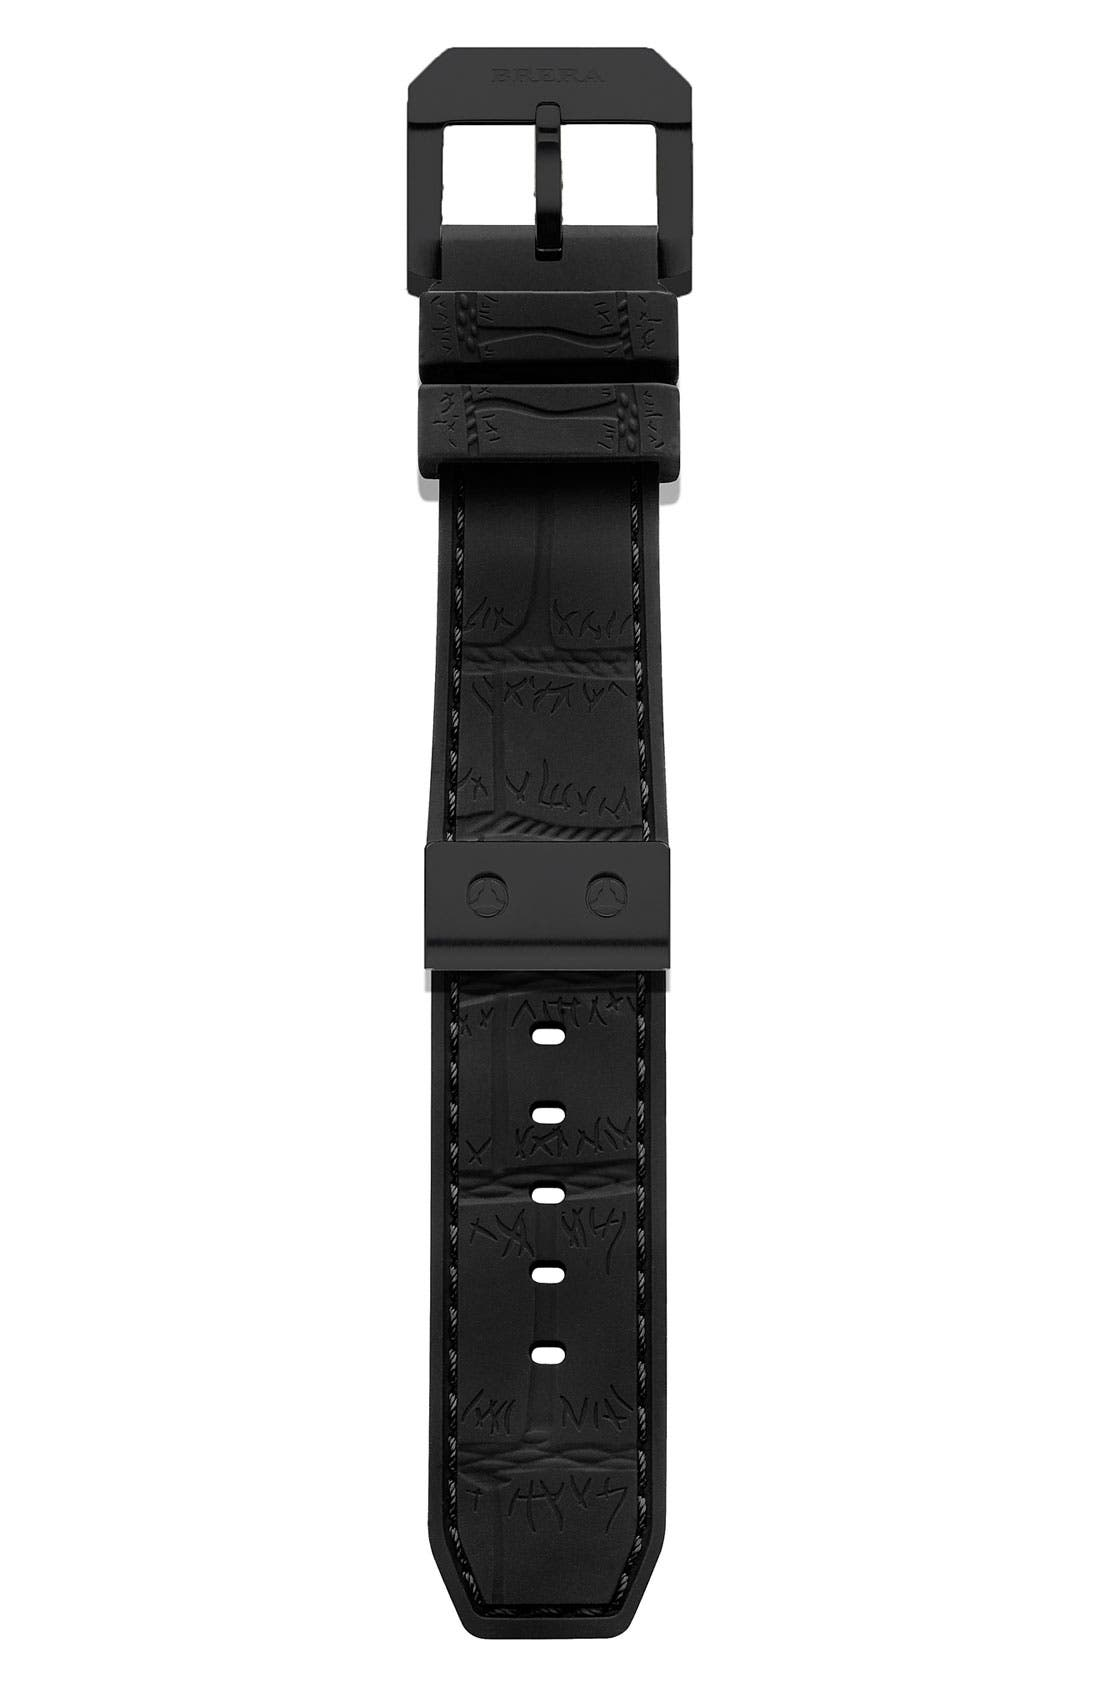 Main Image - 22MM CROC EMBOSSED SILICONE STRAP W BLACK HARDWARE